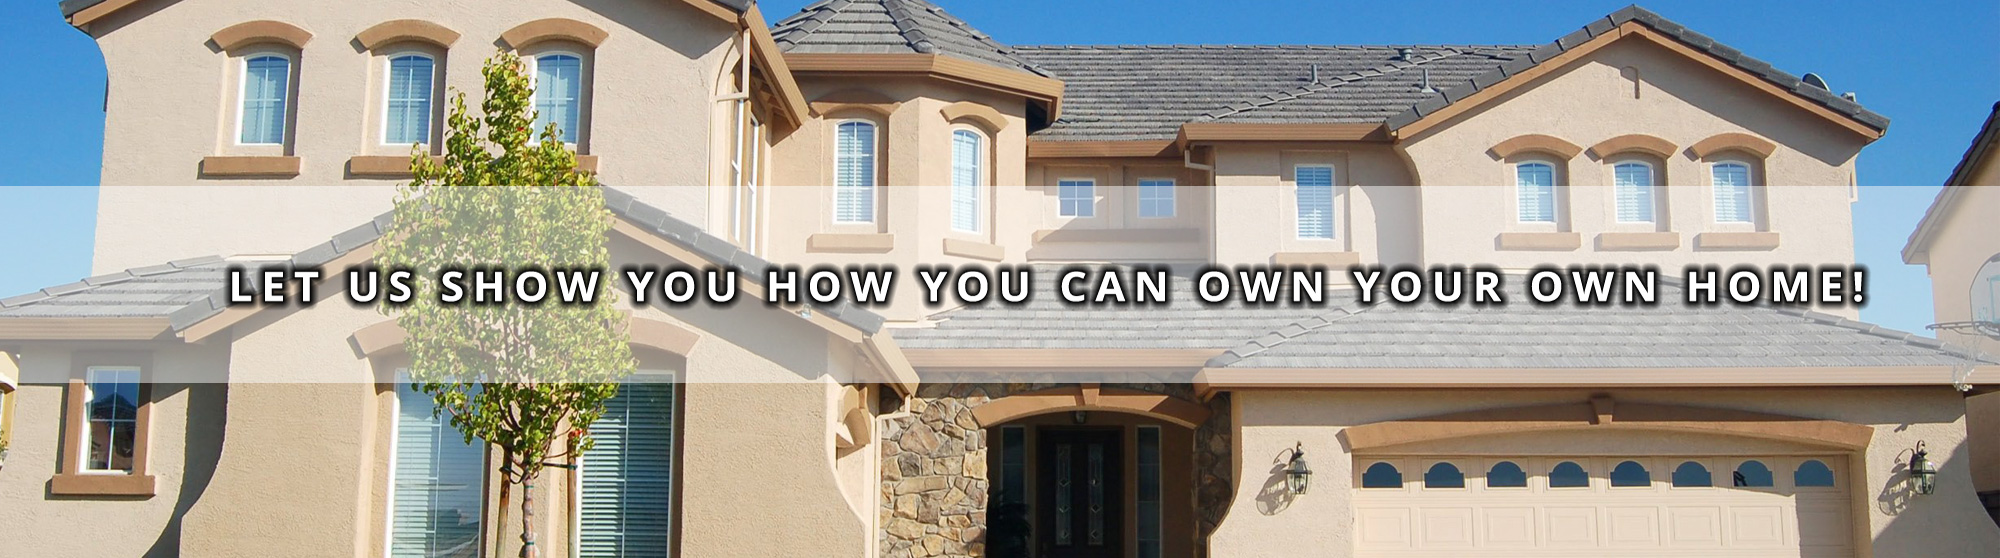 Let Us Show You How You Can Own Your Own Home!